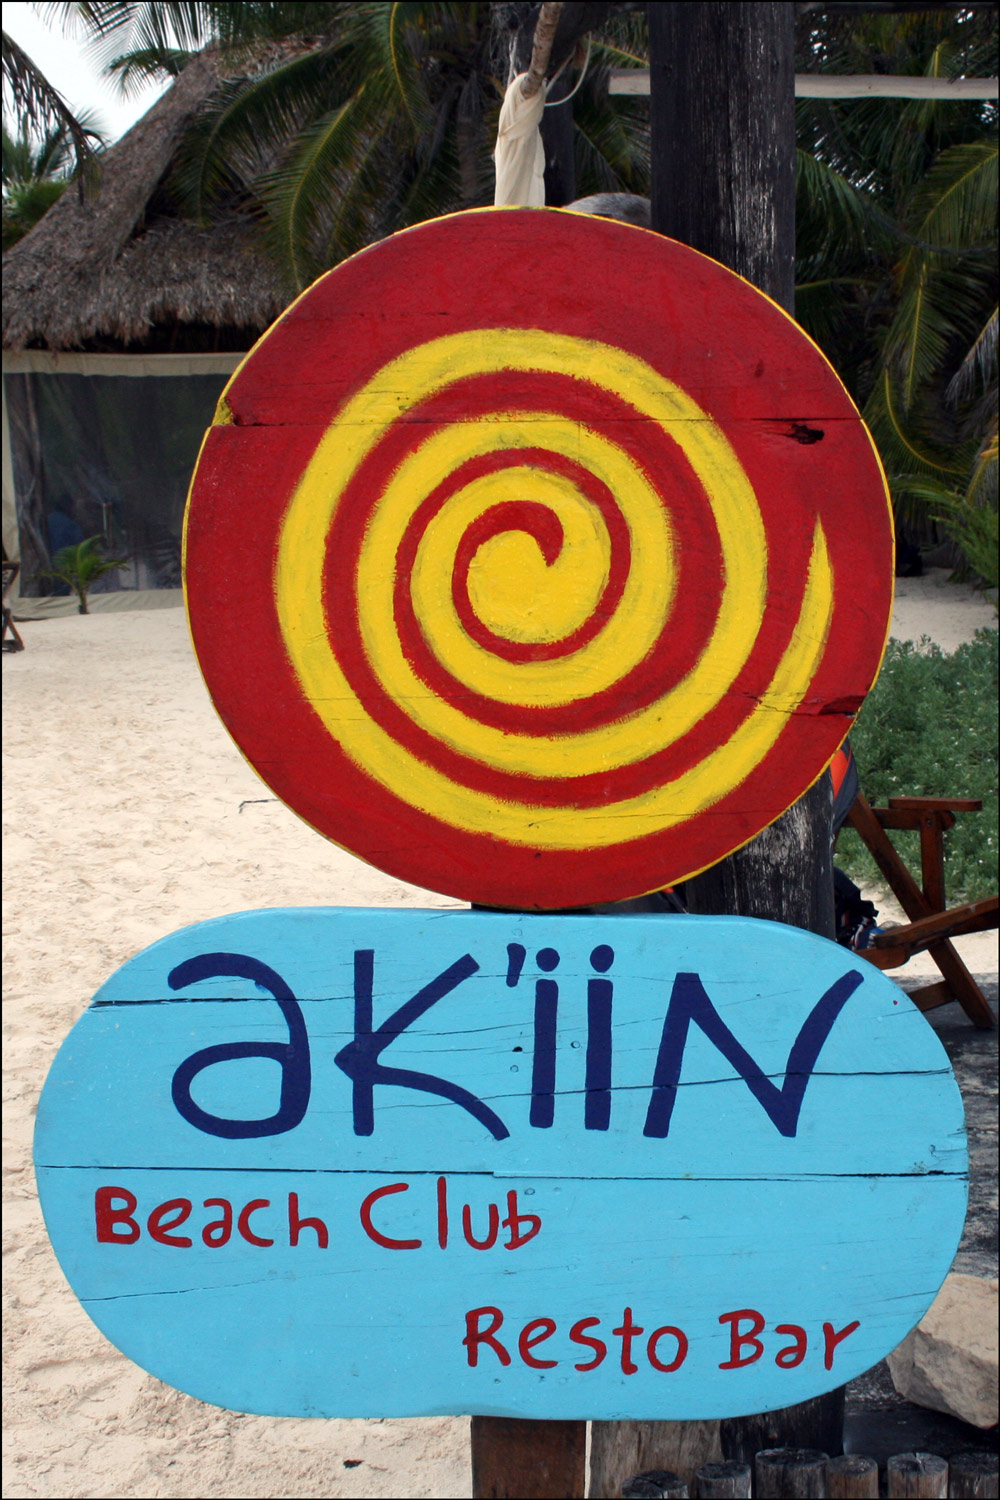 Ak'iin Beach Club Sign